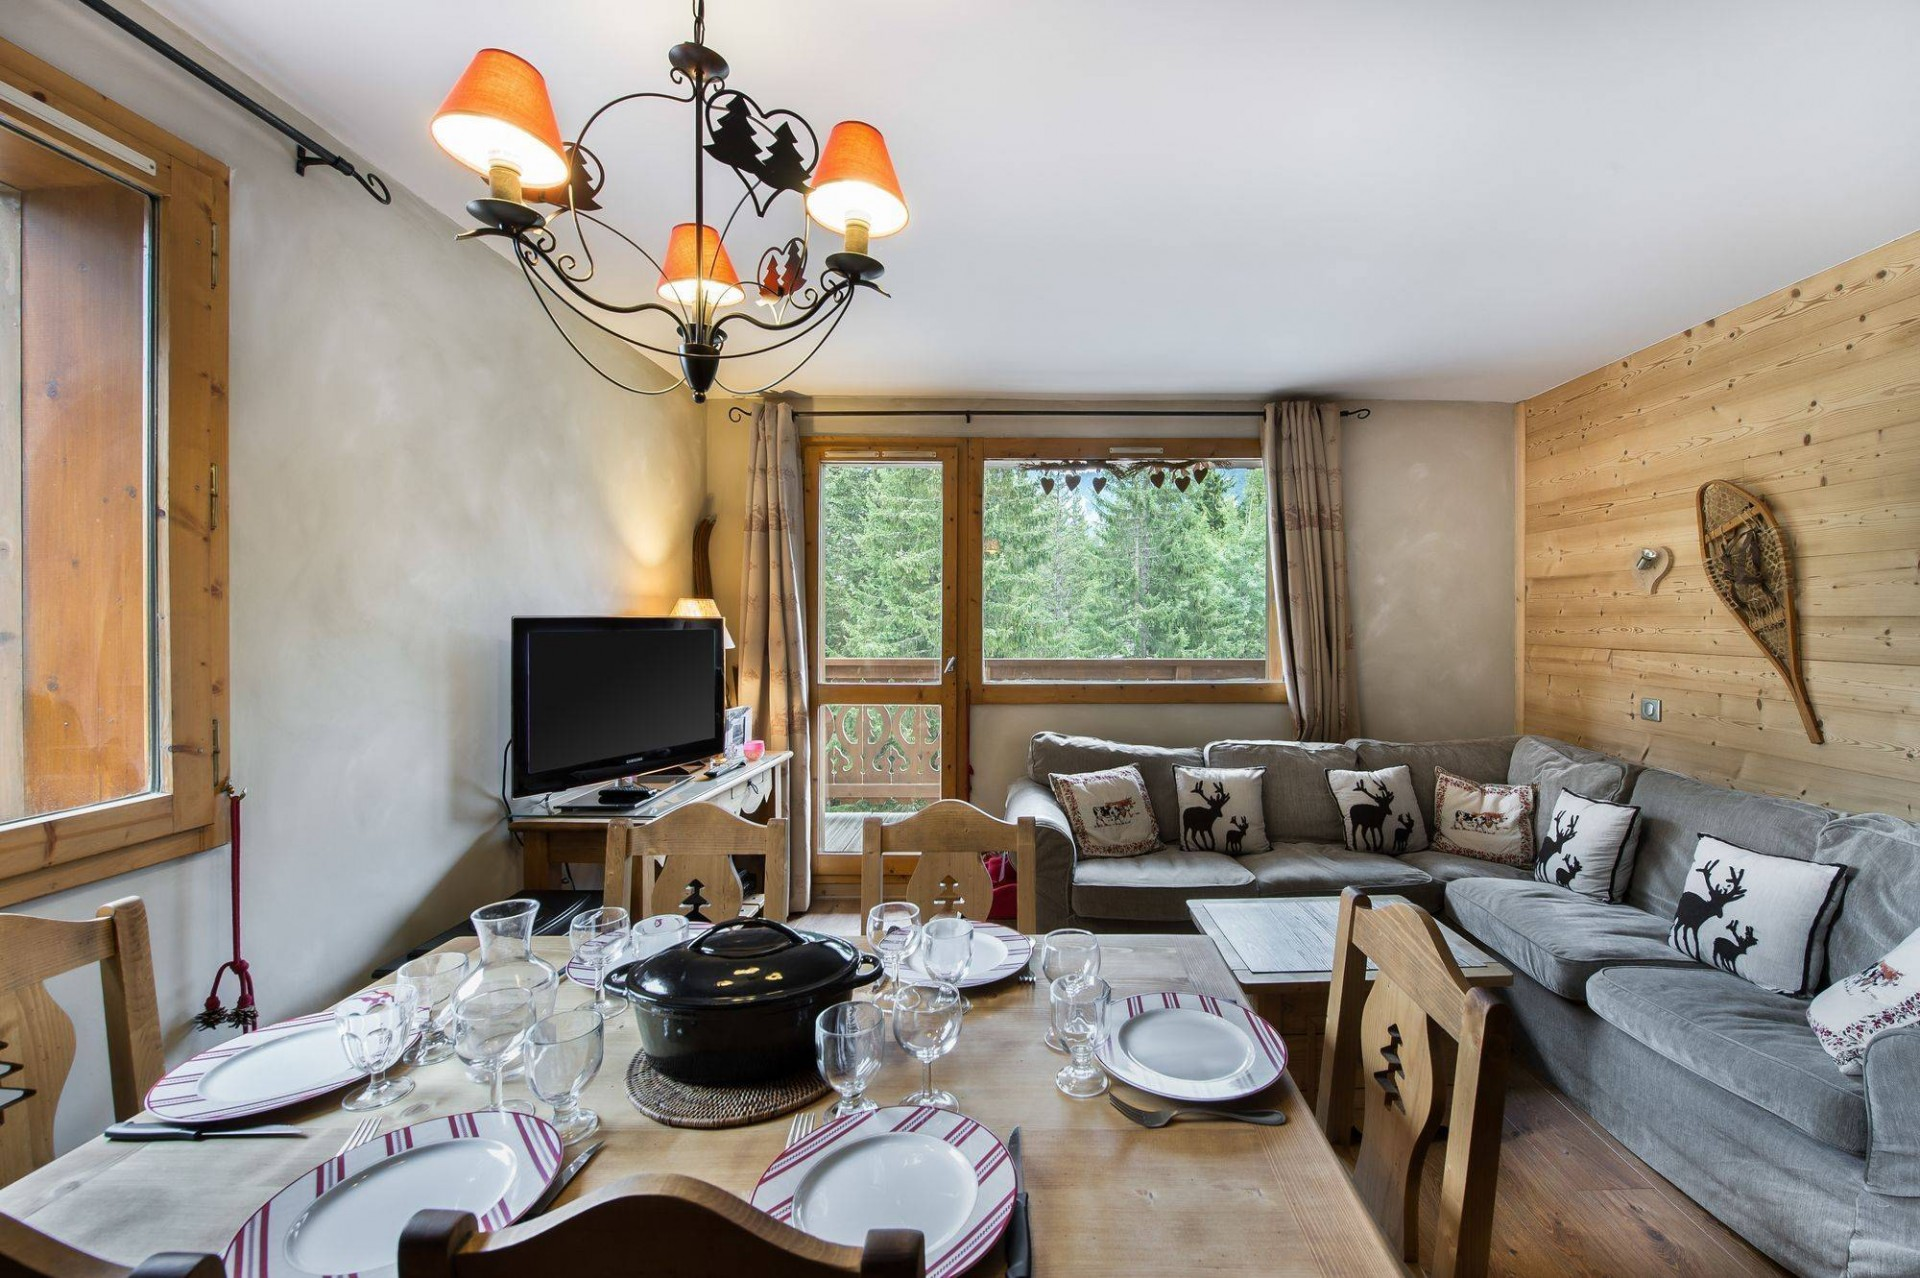 Courchevel 1650 Location Appartement Luxe Temadere Séjour 2